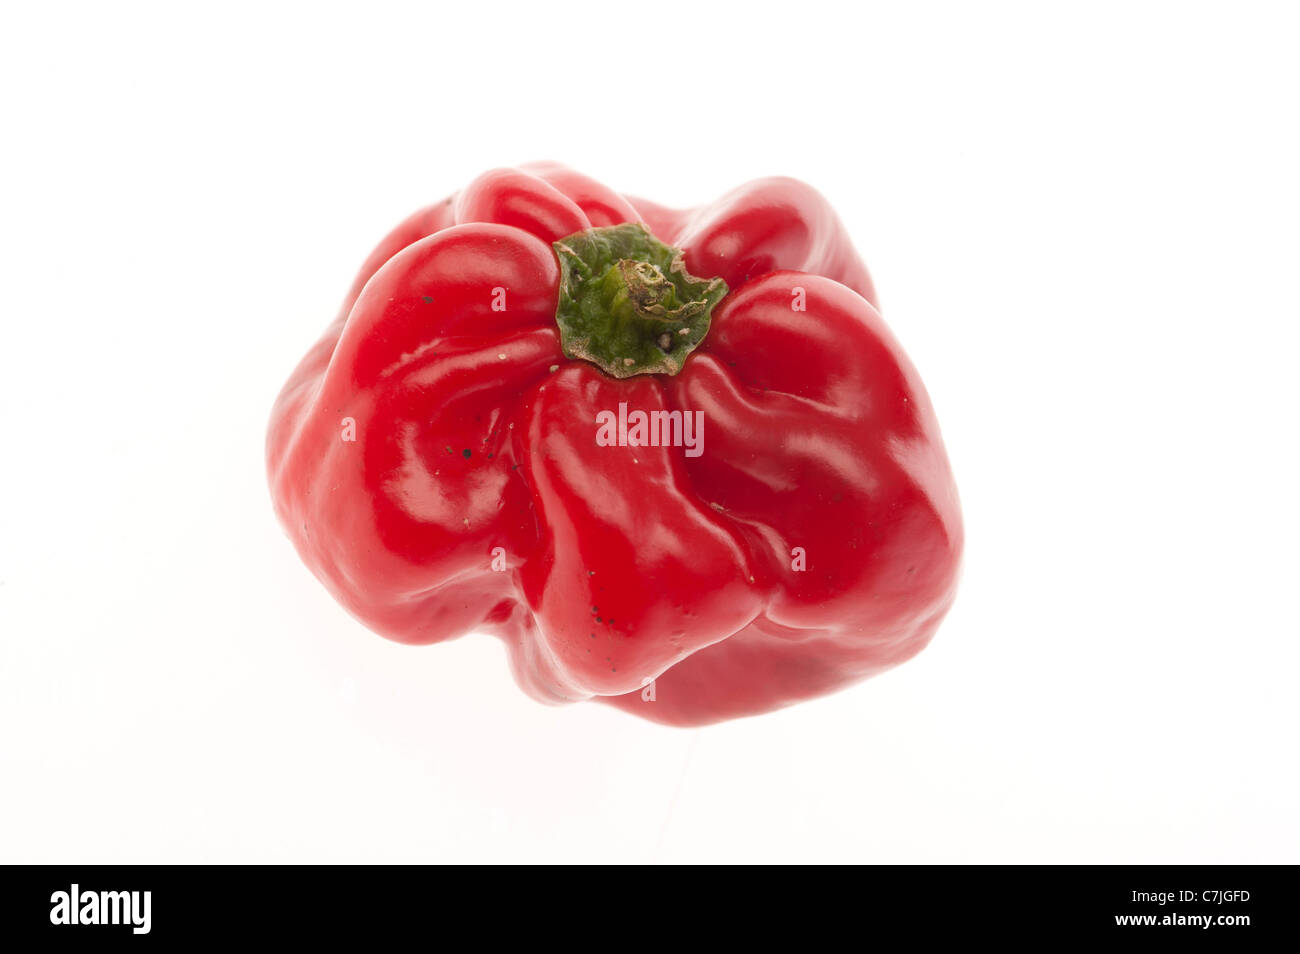 A Home produced red capiscum bell pepper on a white backlit background - Stock Image